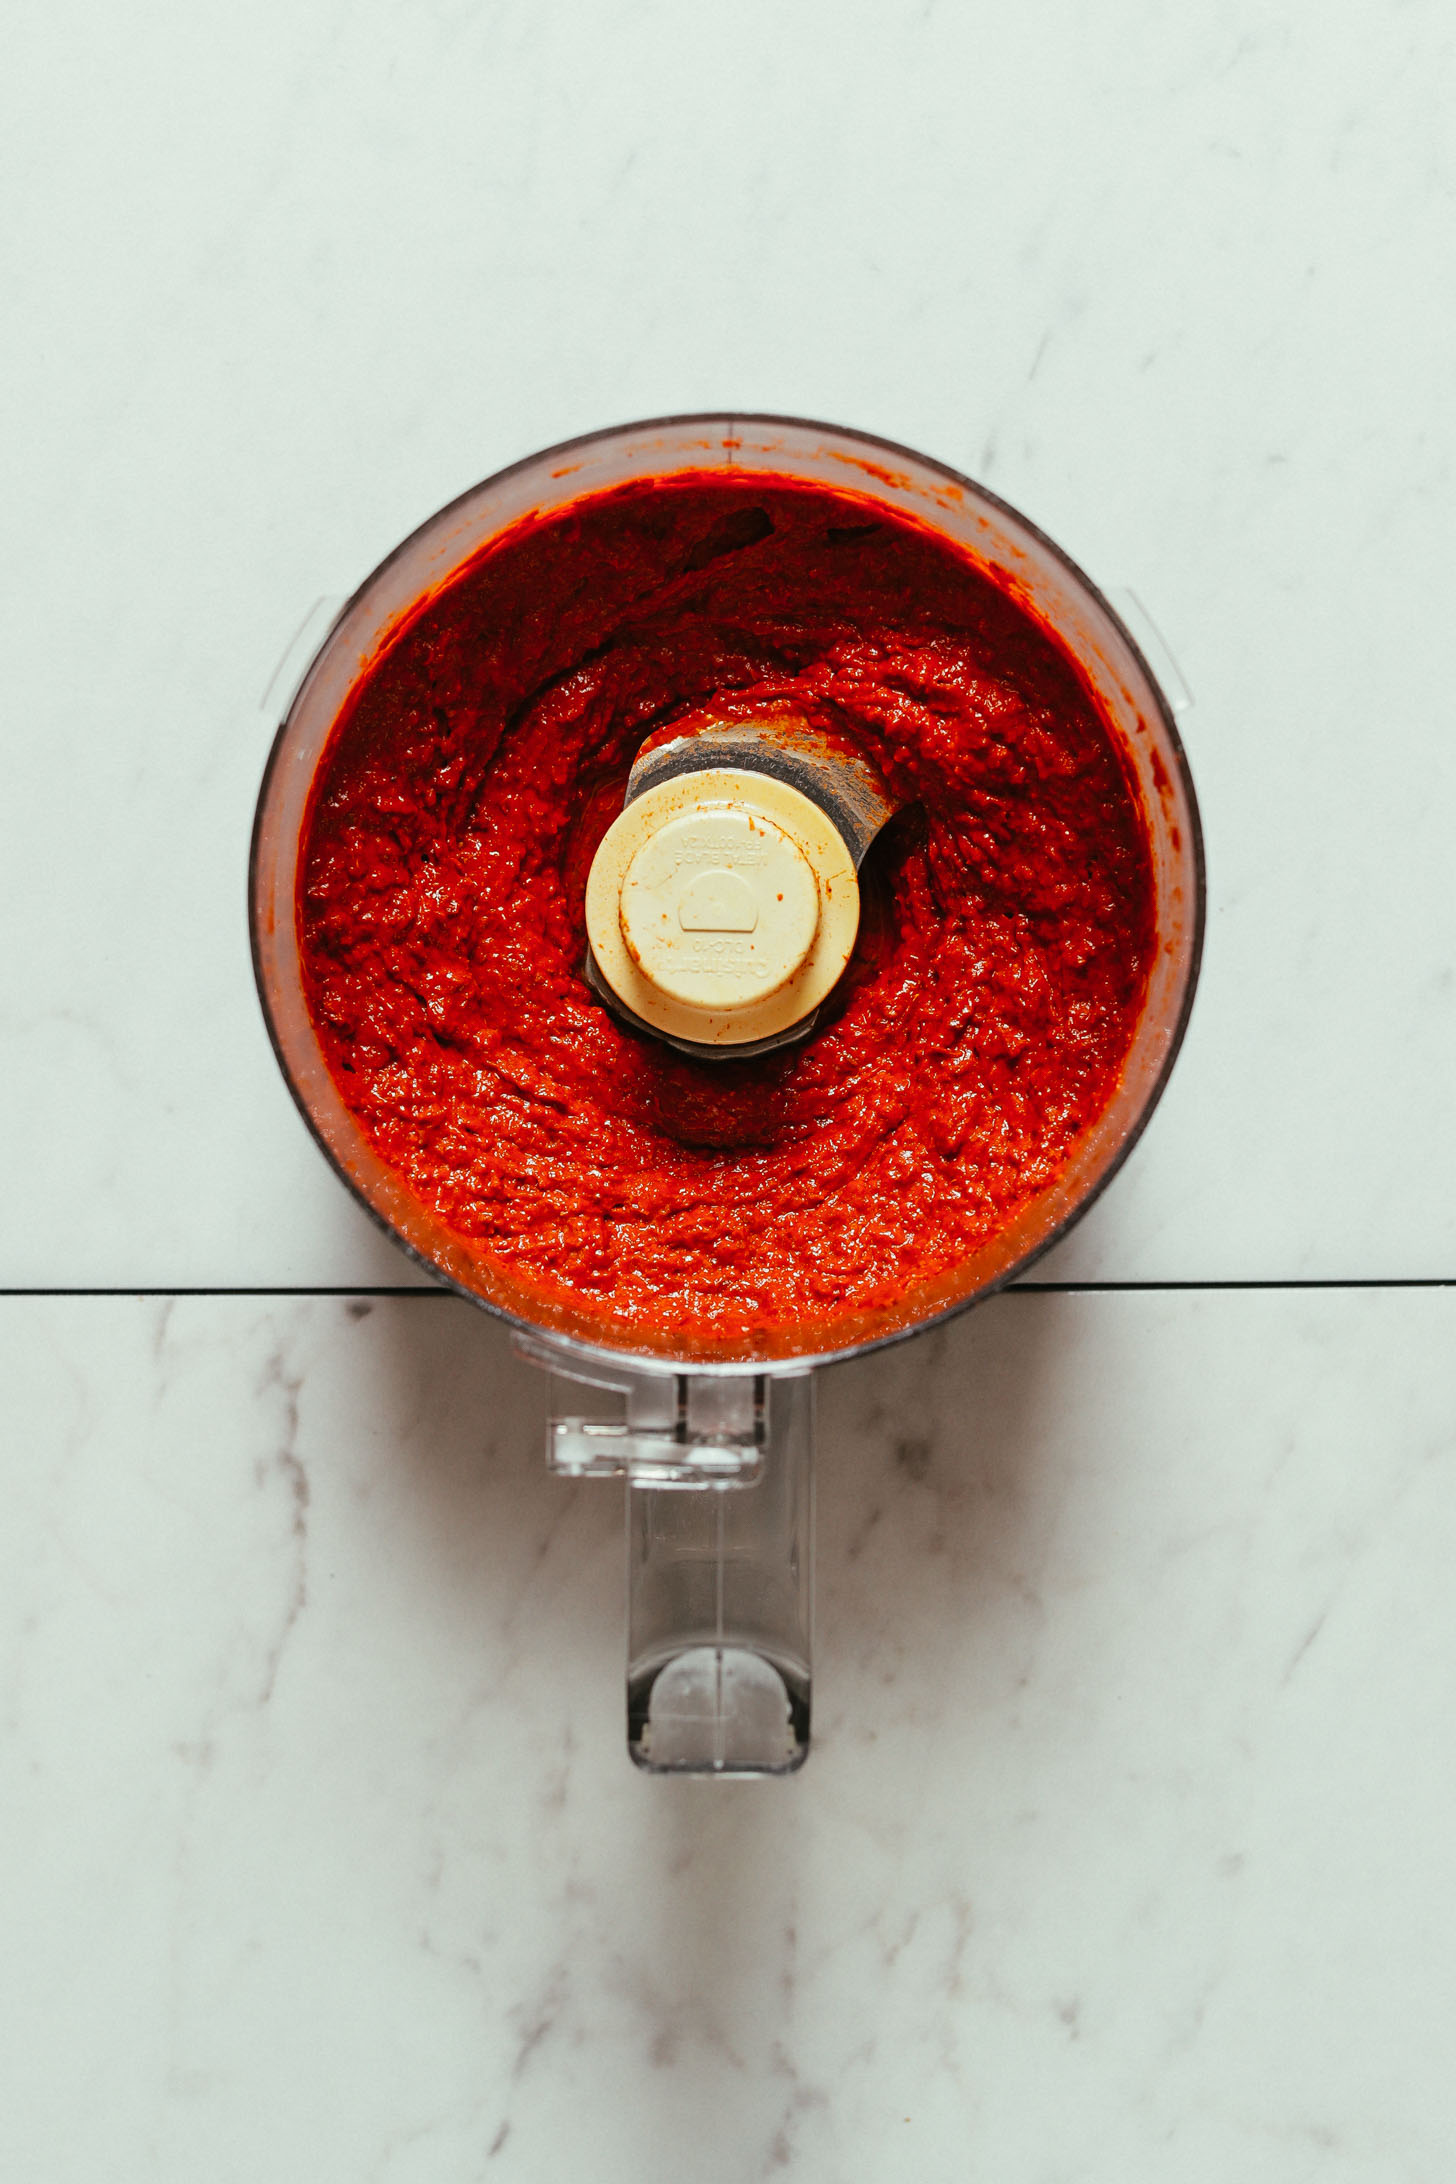 Food processor filled with our freshly blended Harissa Paste